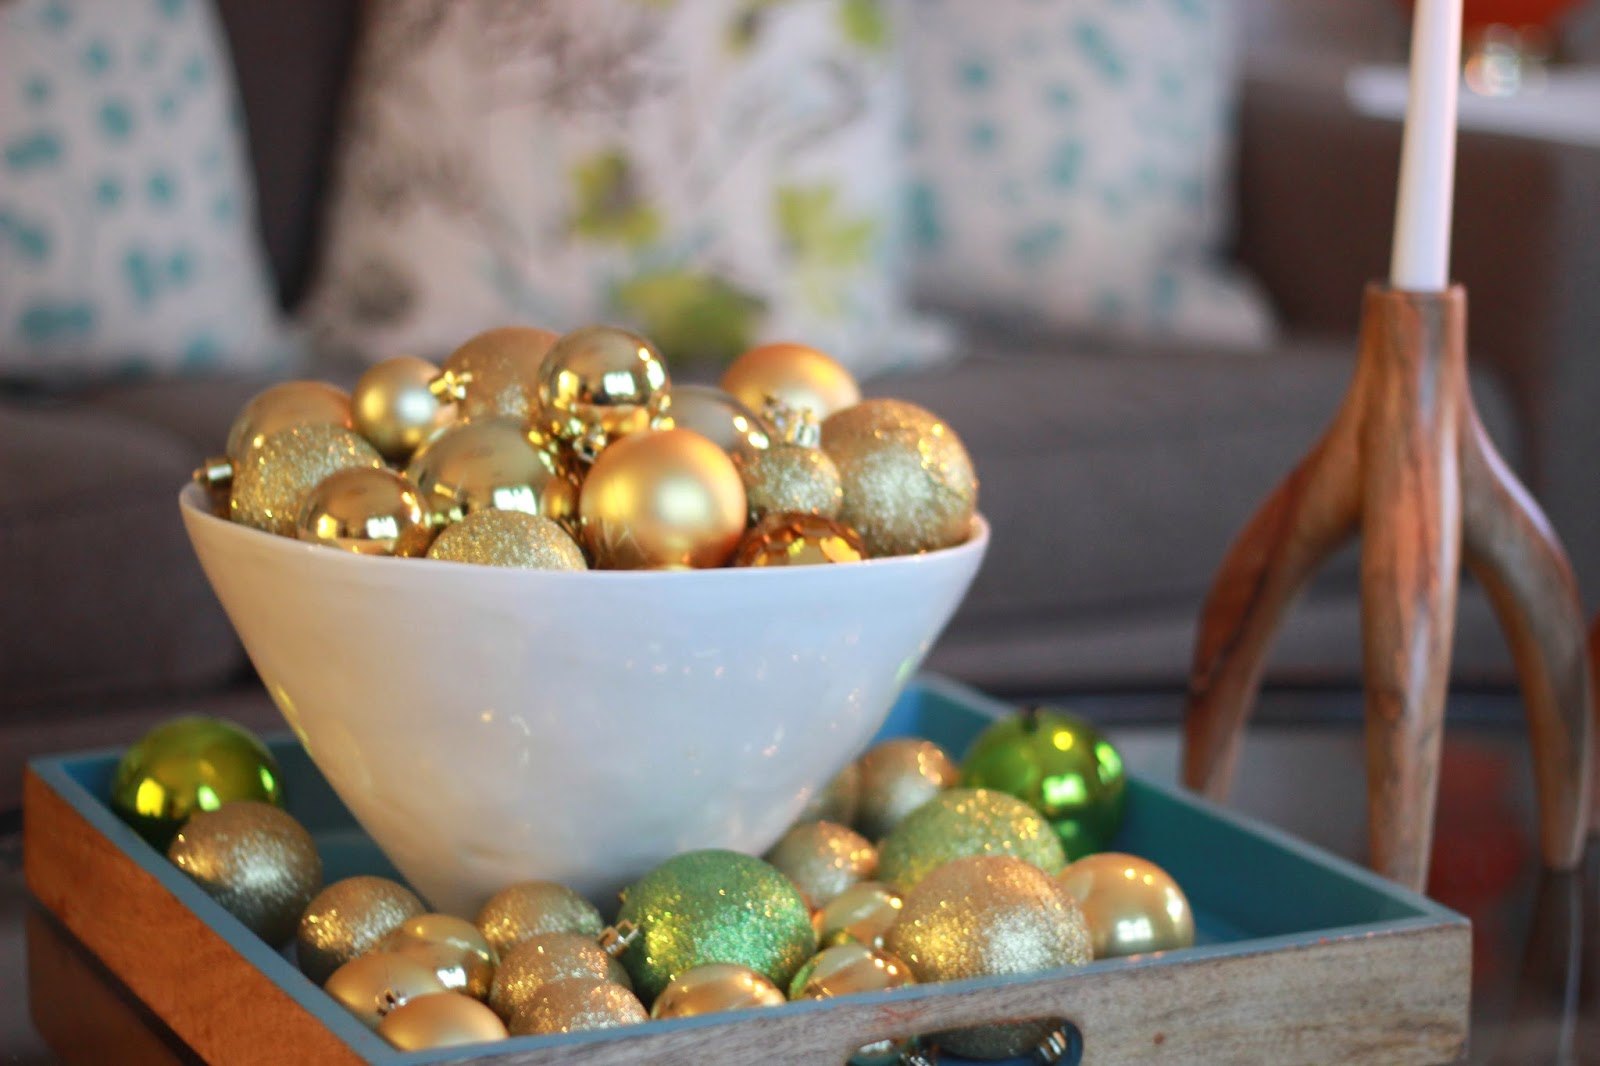 Decking Our Halls in Chartreuse and Gold